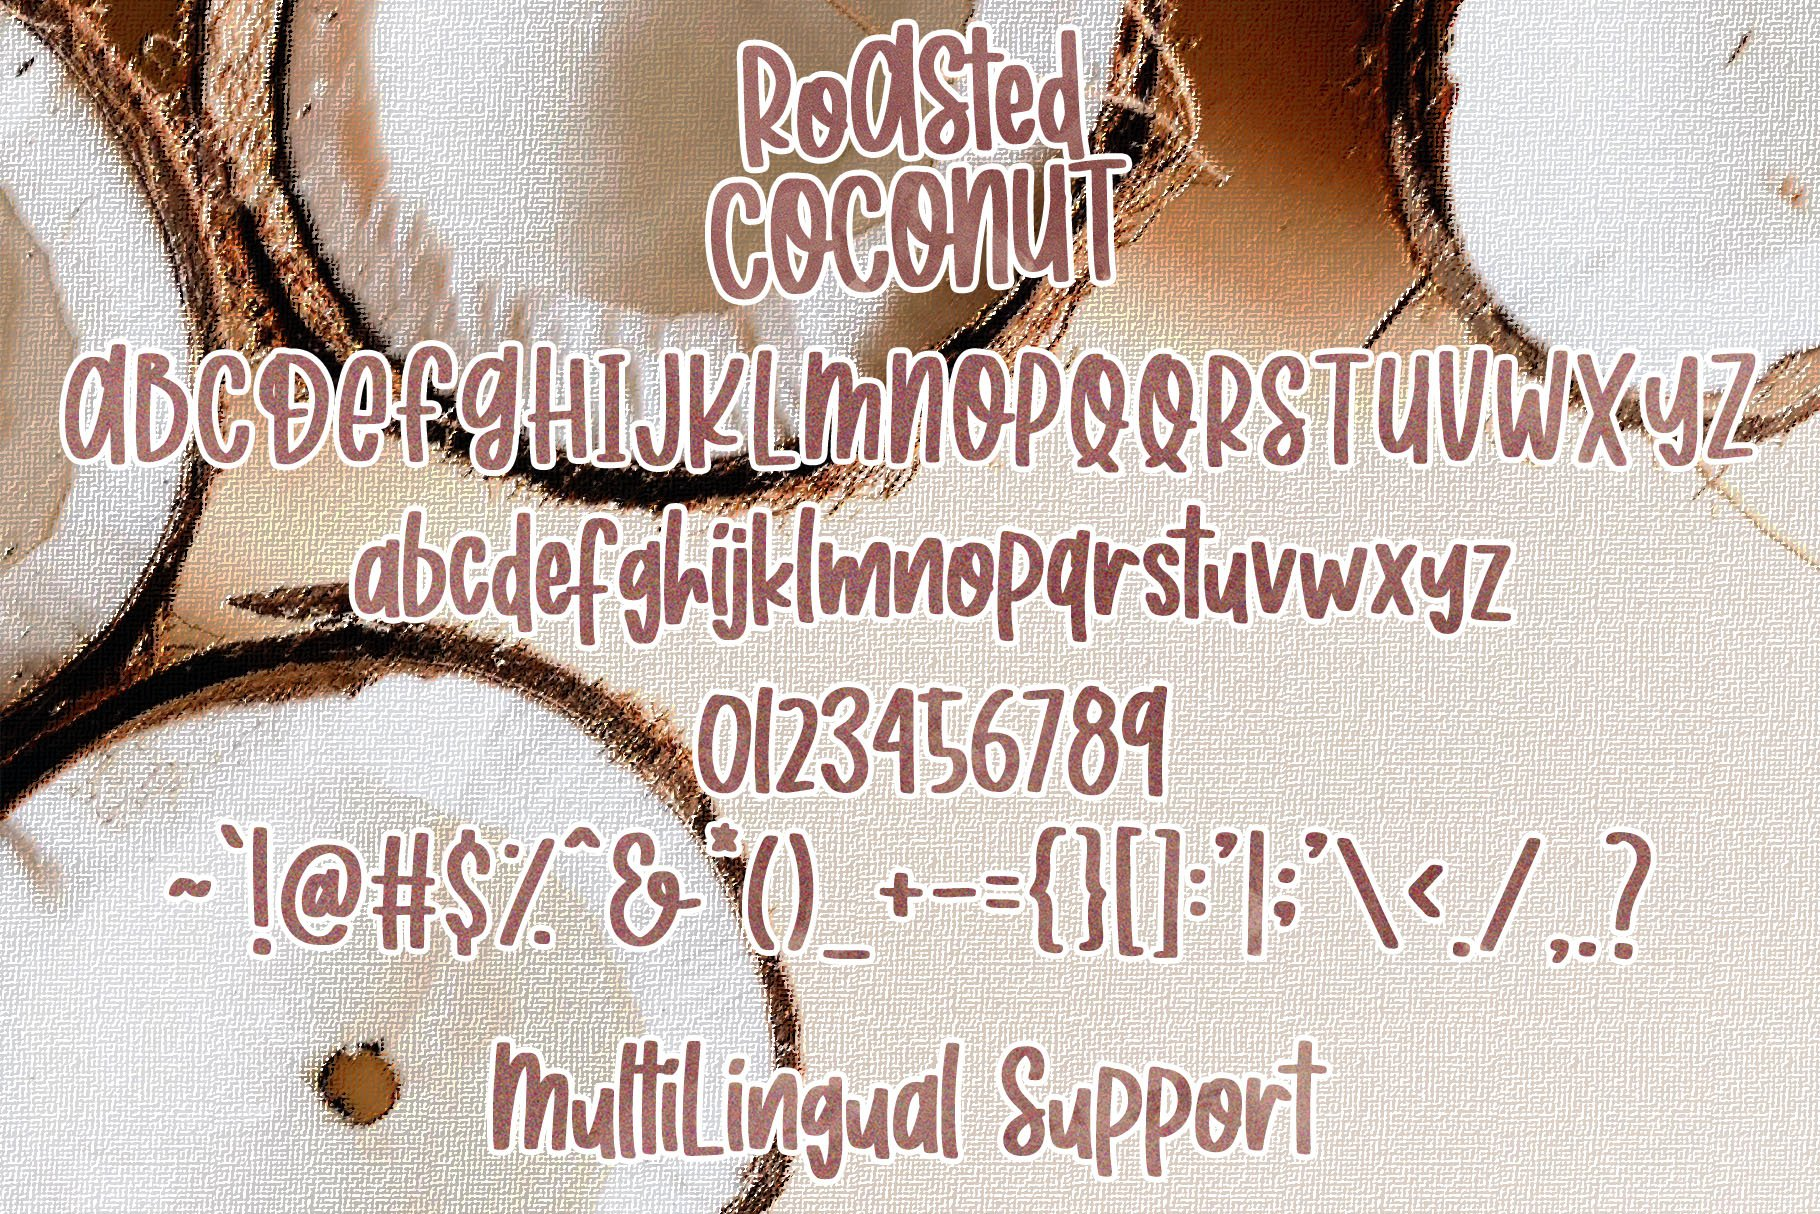 Roasted Coconut - Quirky Handwritten Font example image 5